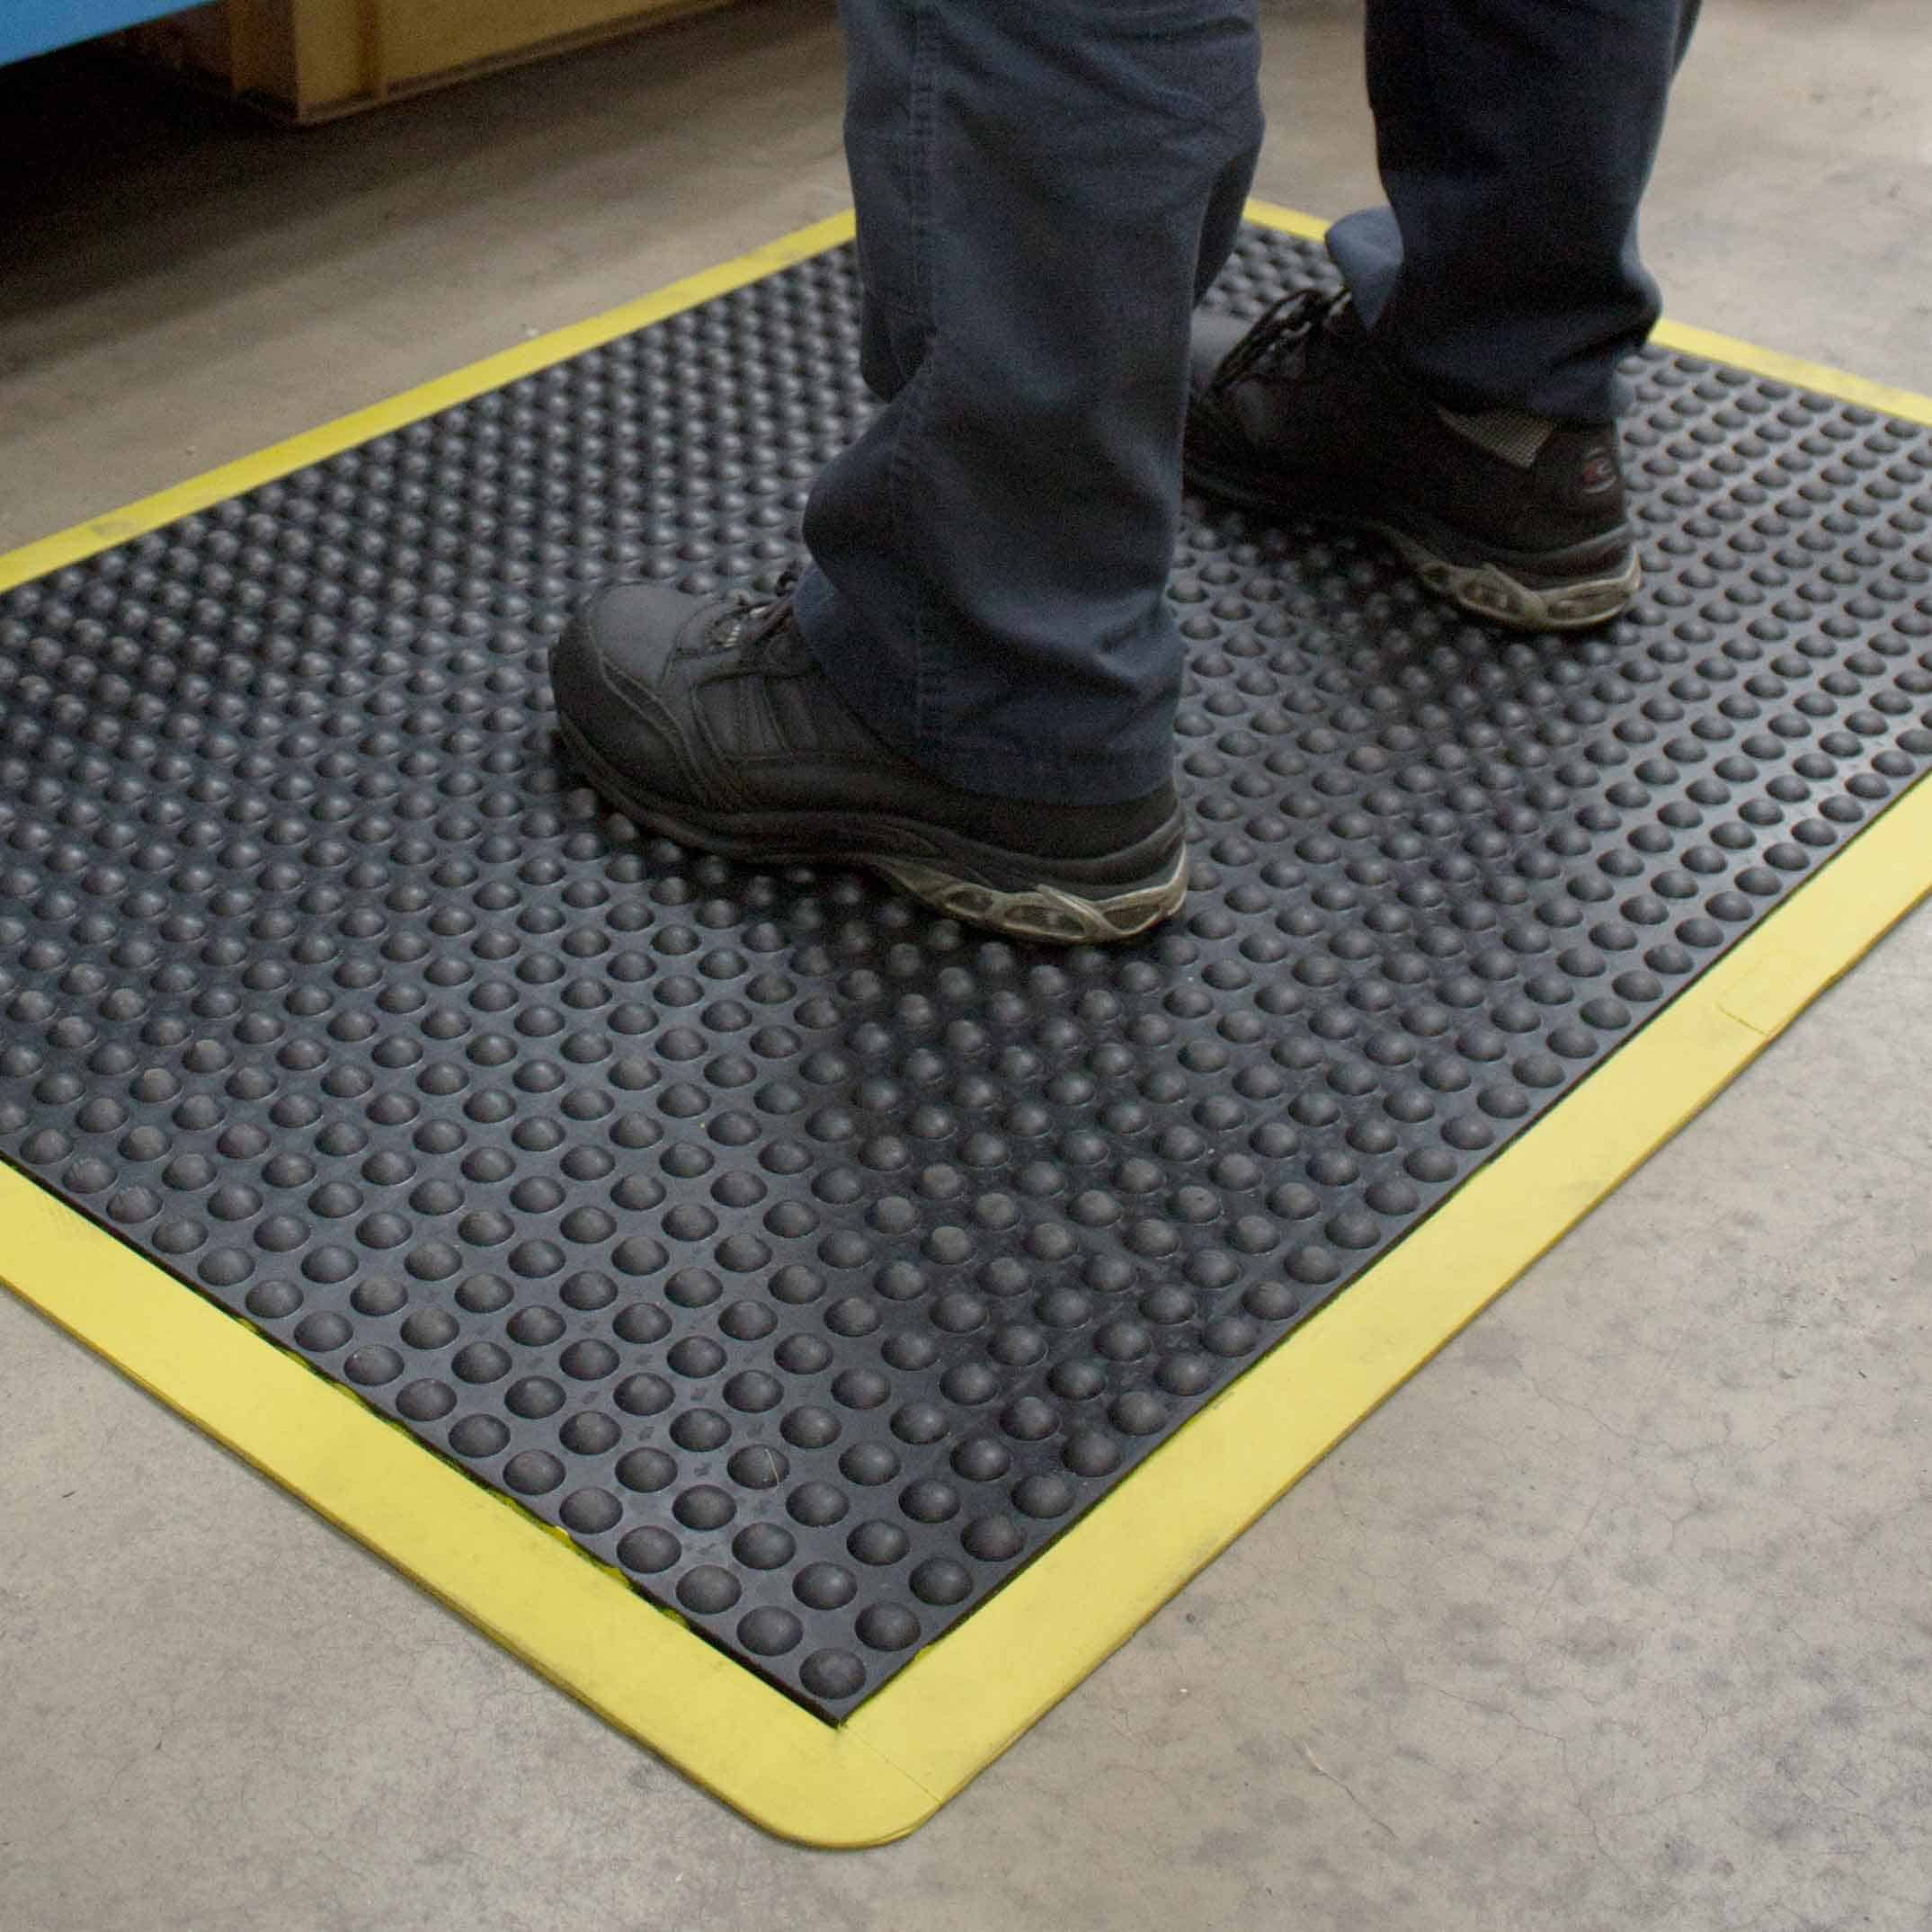 Anti-Fatigue Bubblemat Nitrile Workplace Matting